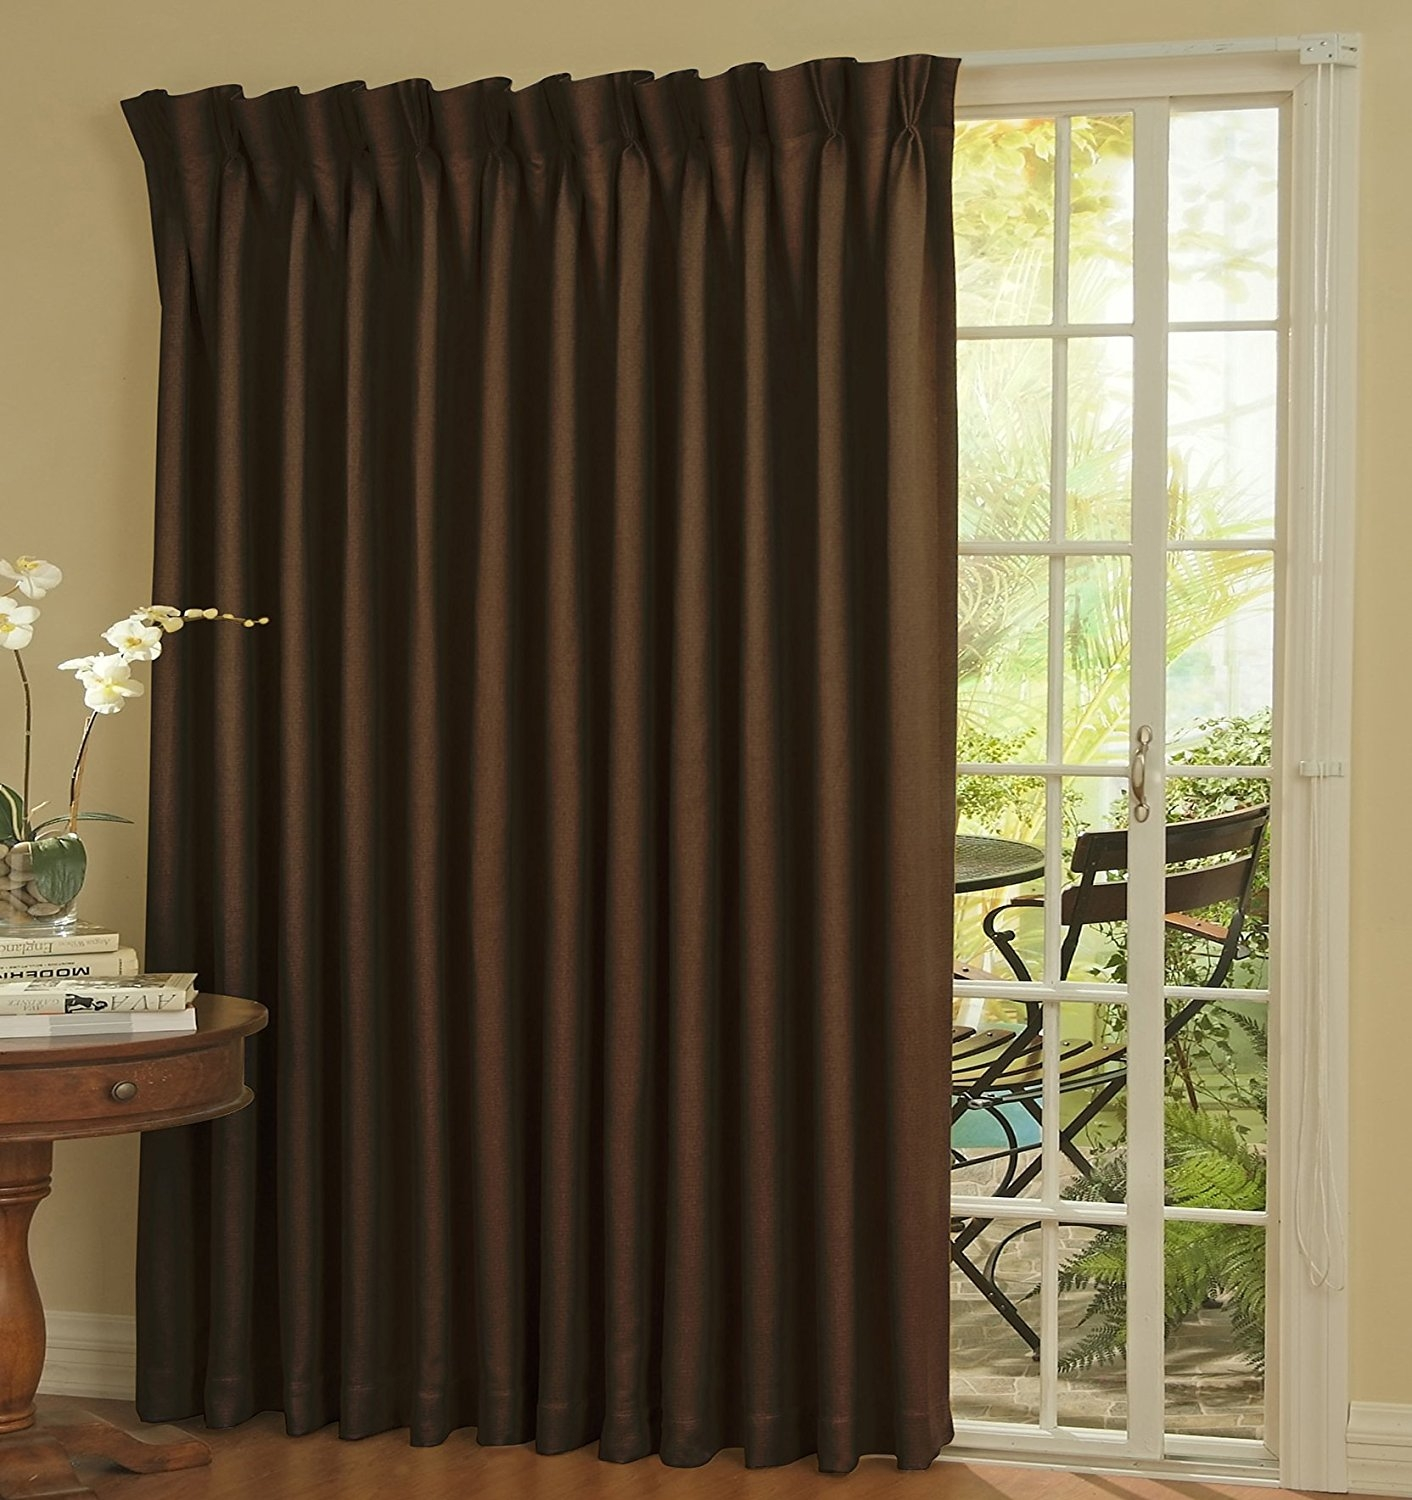 Amazon Eclipse Curtains Thermal Blackout 100 X 84 Inch Inside Sliding Glass Door Curtains (Image 1 of 25)